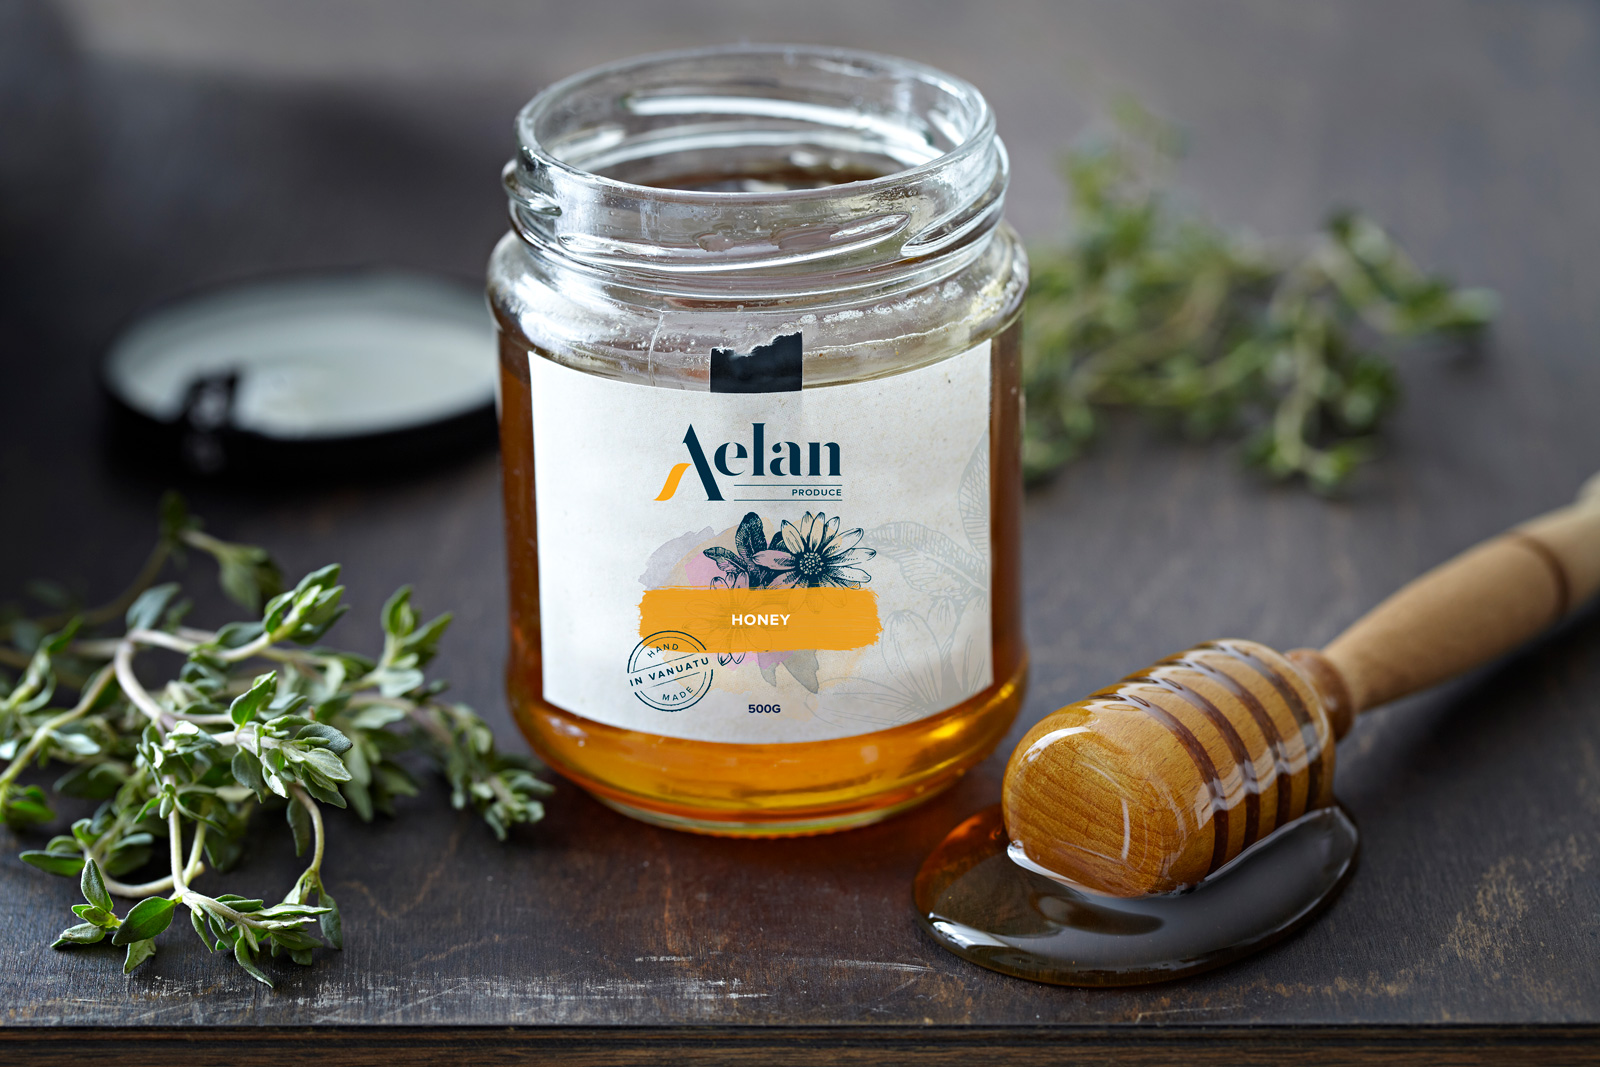 Aelan-Honey_2